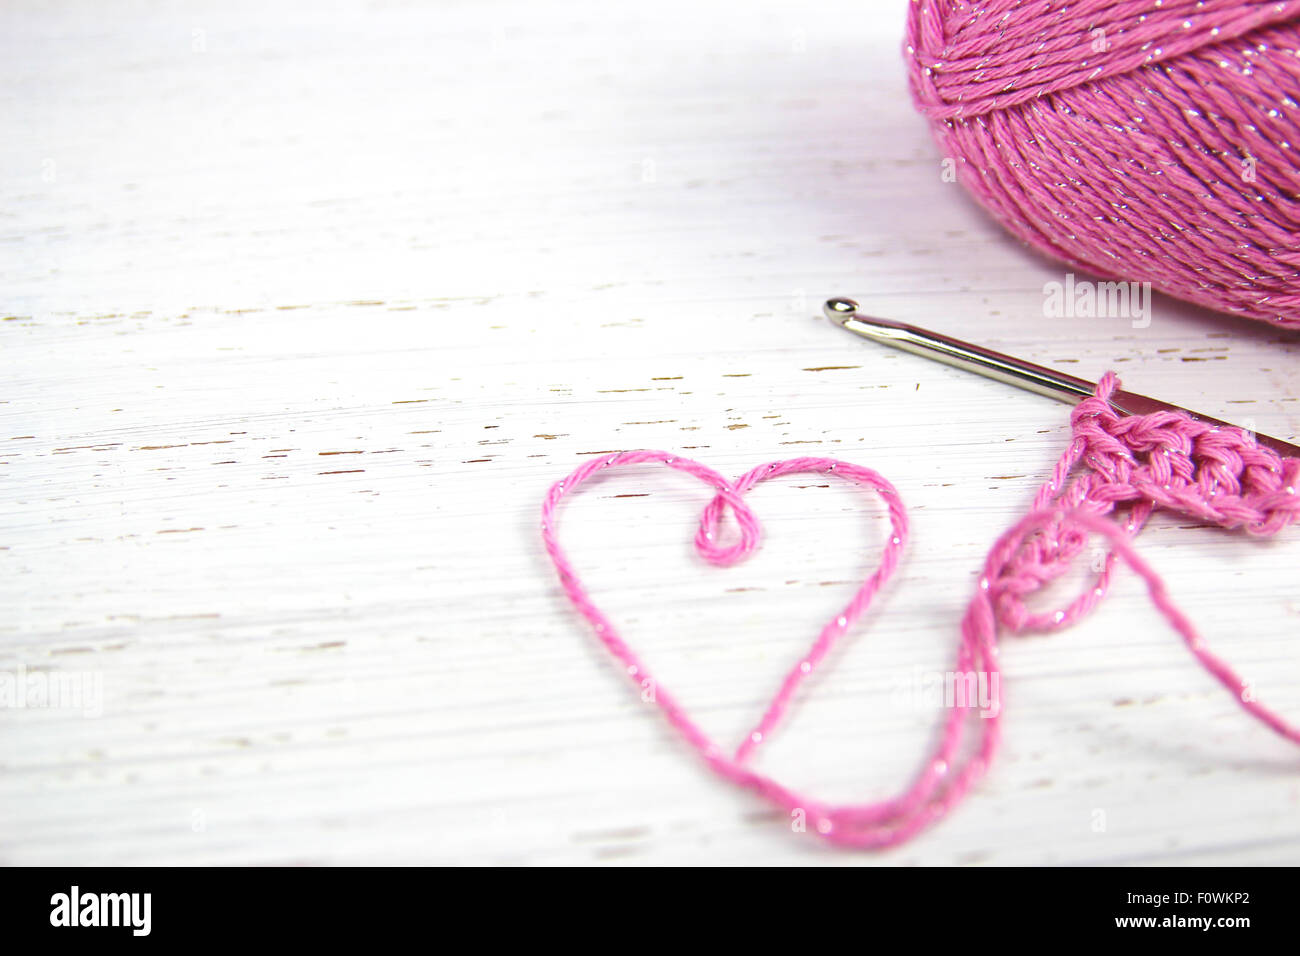 Pink Crochet Background Yarn Heart Imágenes De Stock & Pink Crochet ...